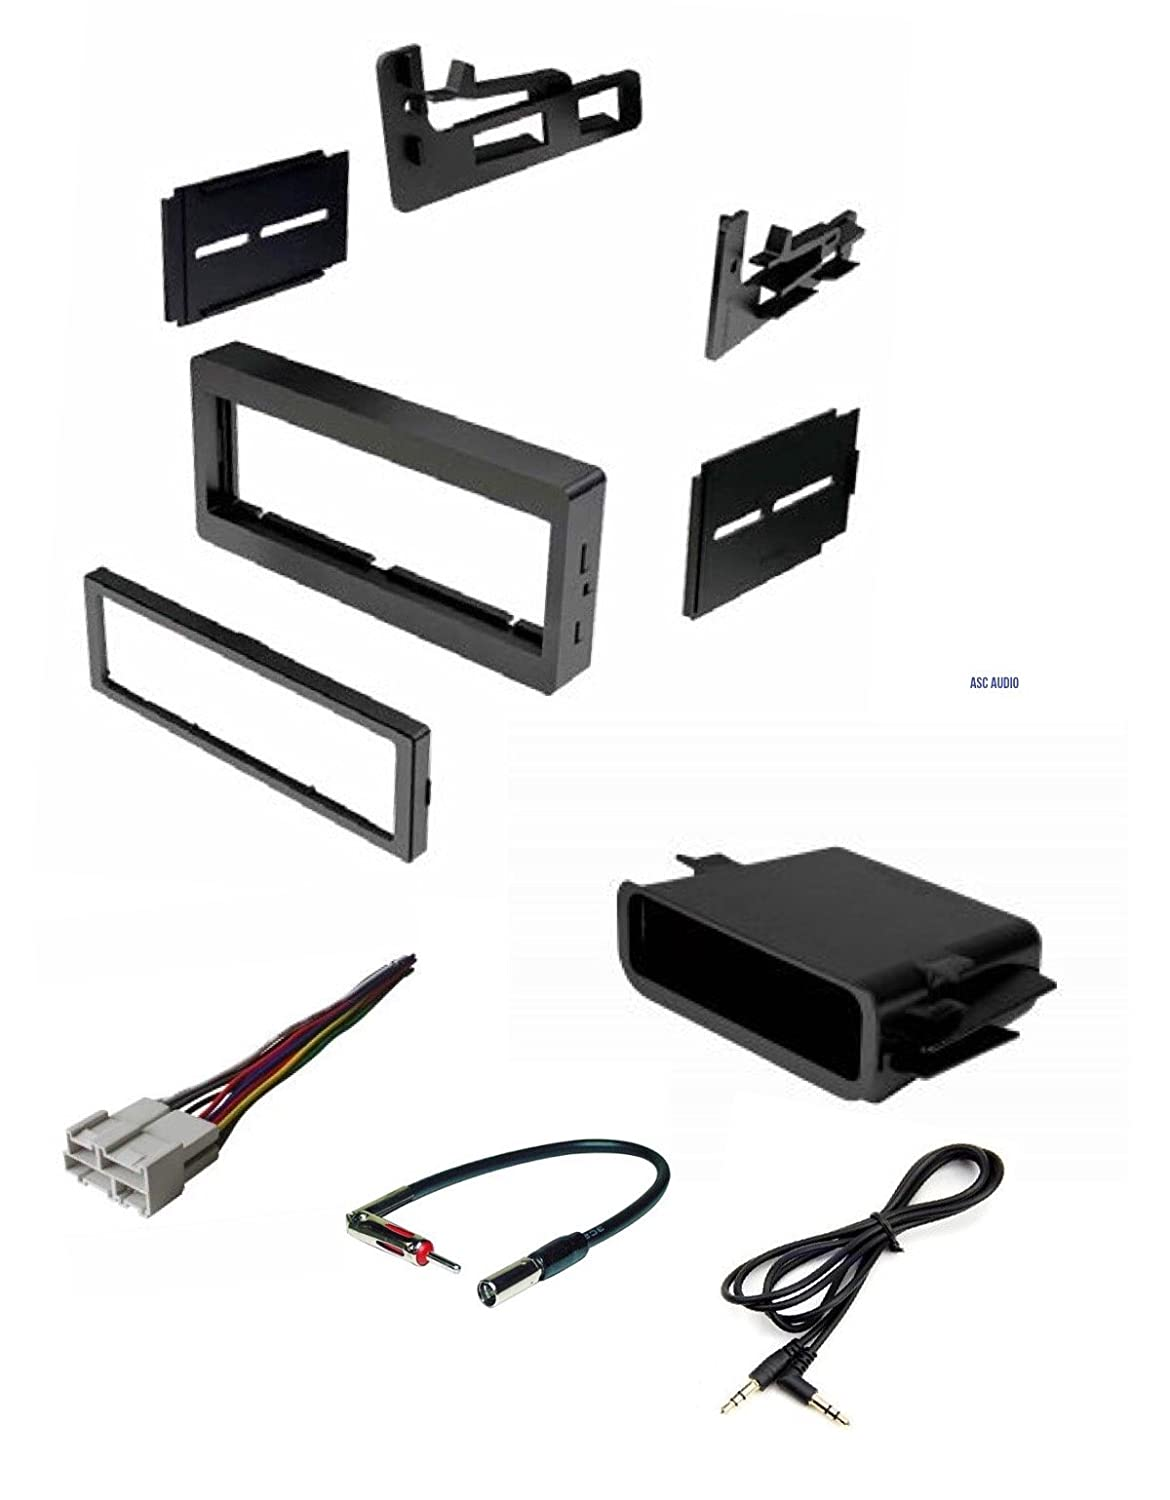 Car Stereo Dash Kit, Wire Harness, Antenna Adapter, Pocket for Installing a Single Din Radio for some 95-02 Chevrolet Astro Avalanche Express Silverado Suburban Tahoe GMC Sierra Yukon - No Premium Amp